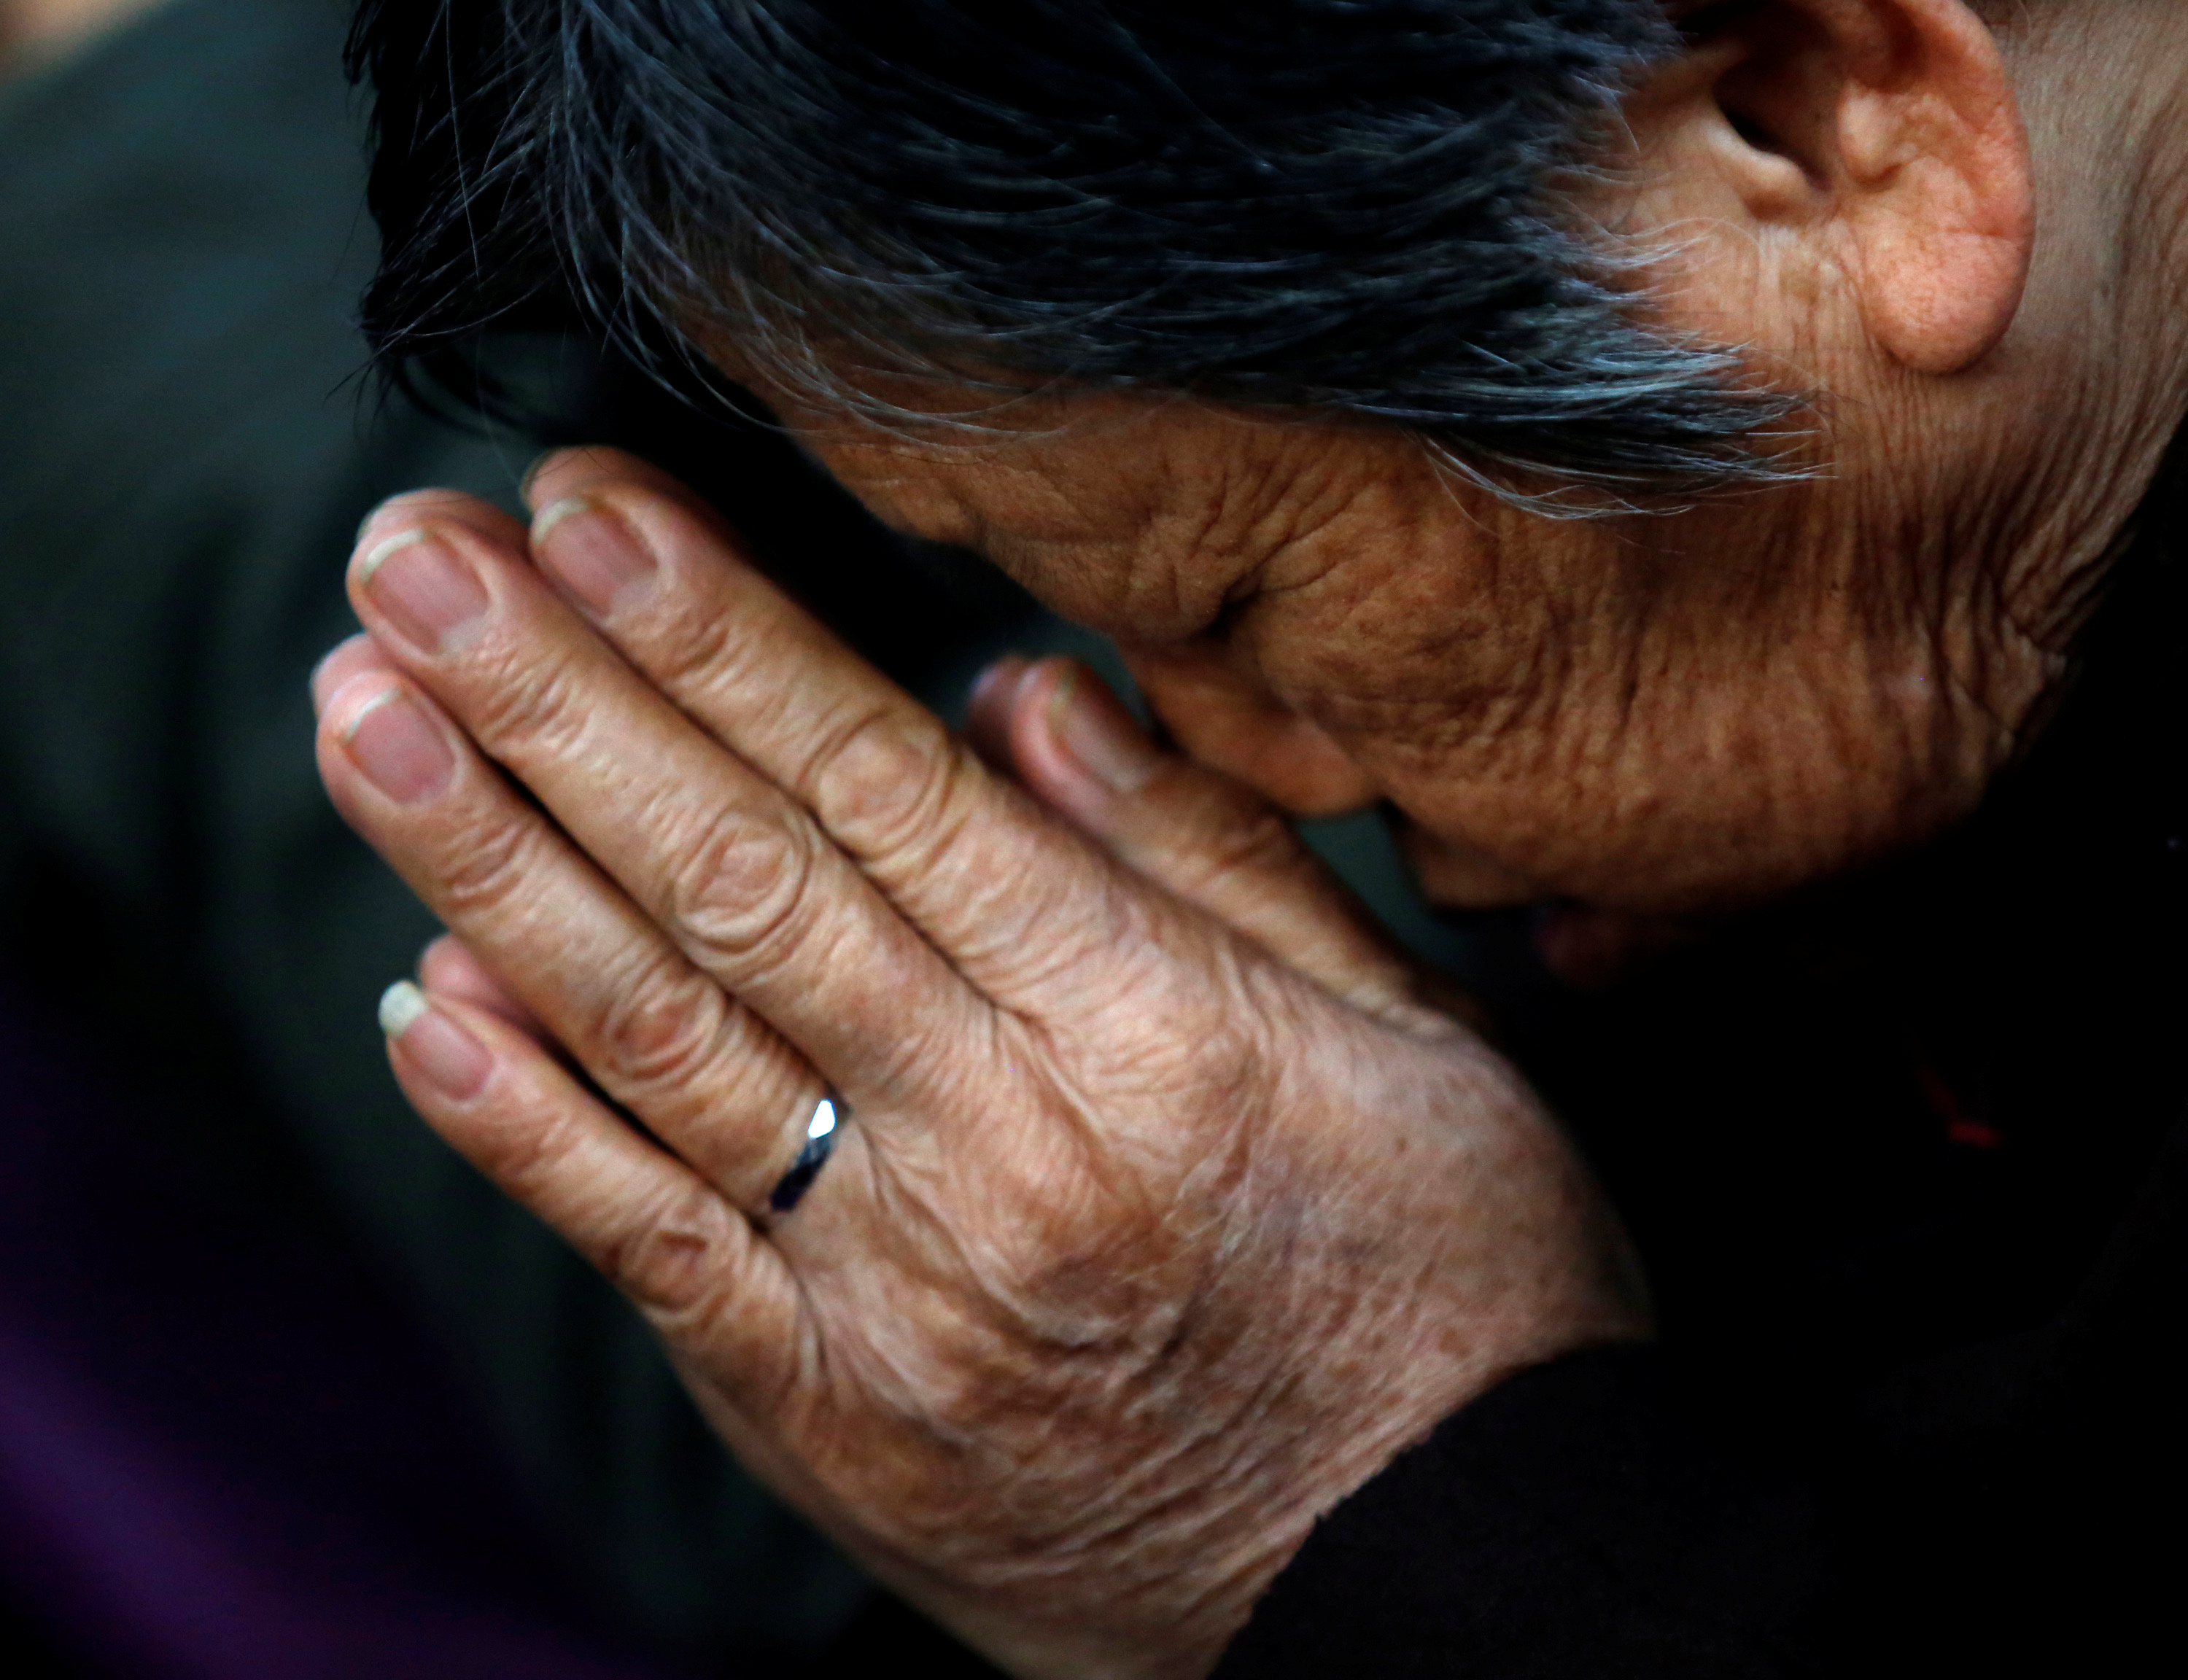 A believer prays during a weekend mass at an underground Catholic church in Tianjin in Nov. 10, 2013.